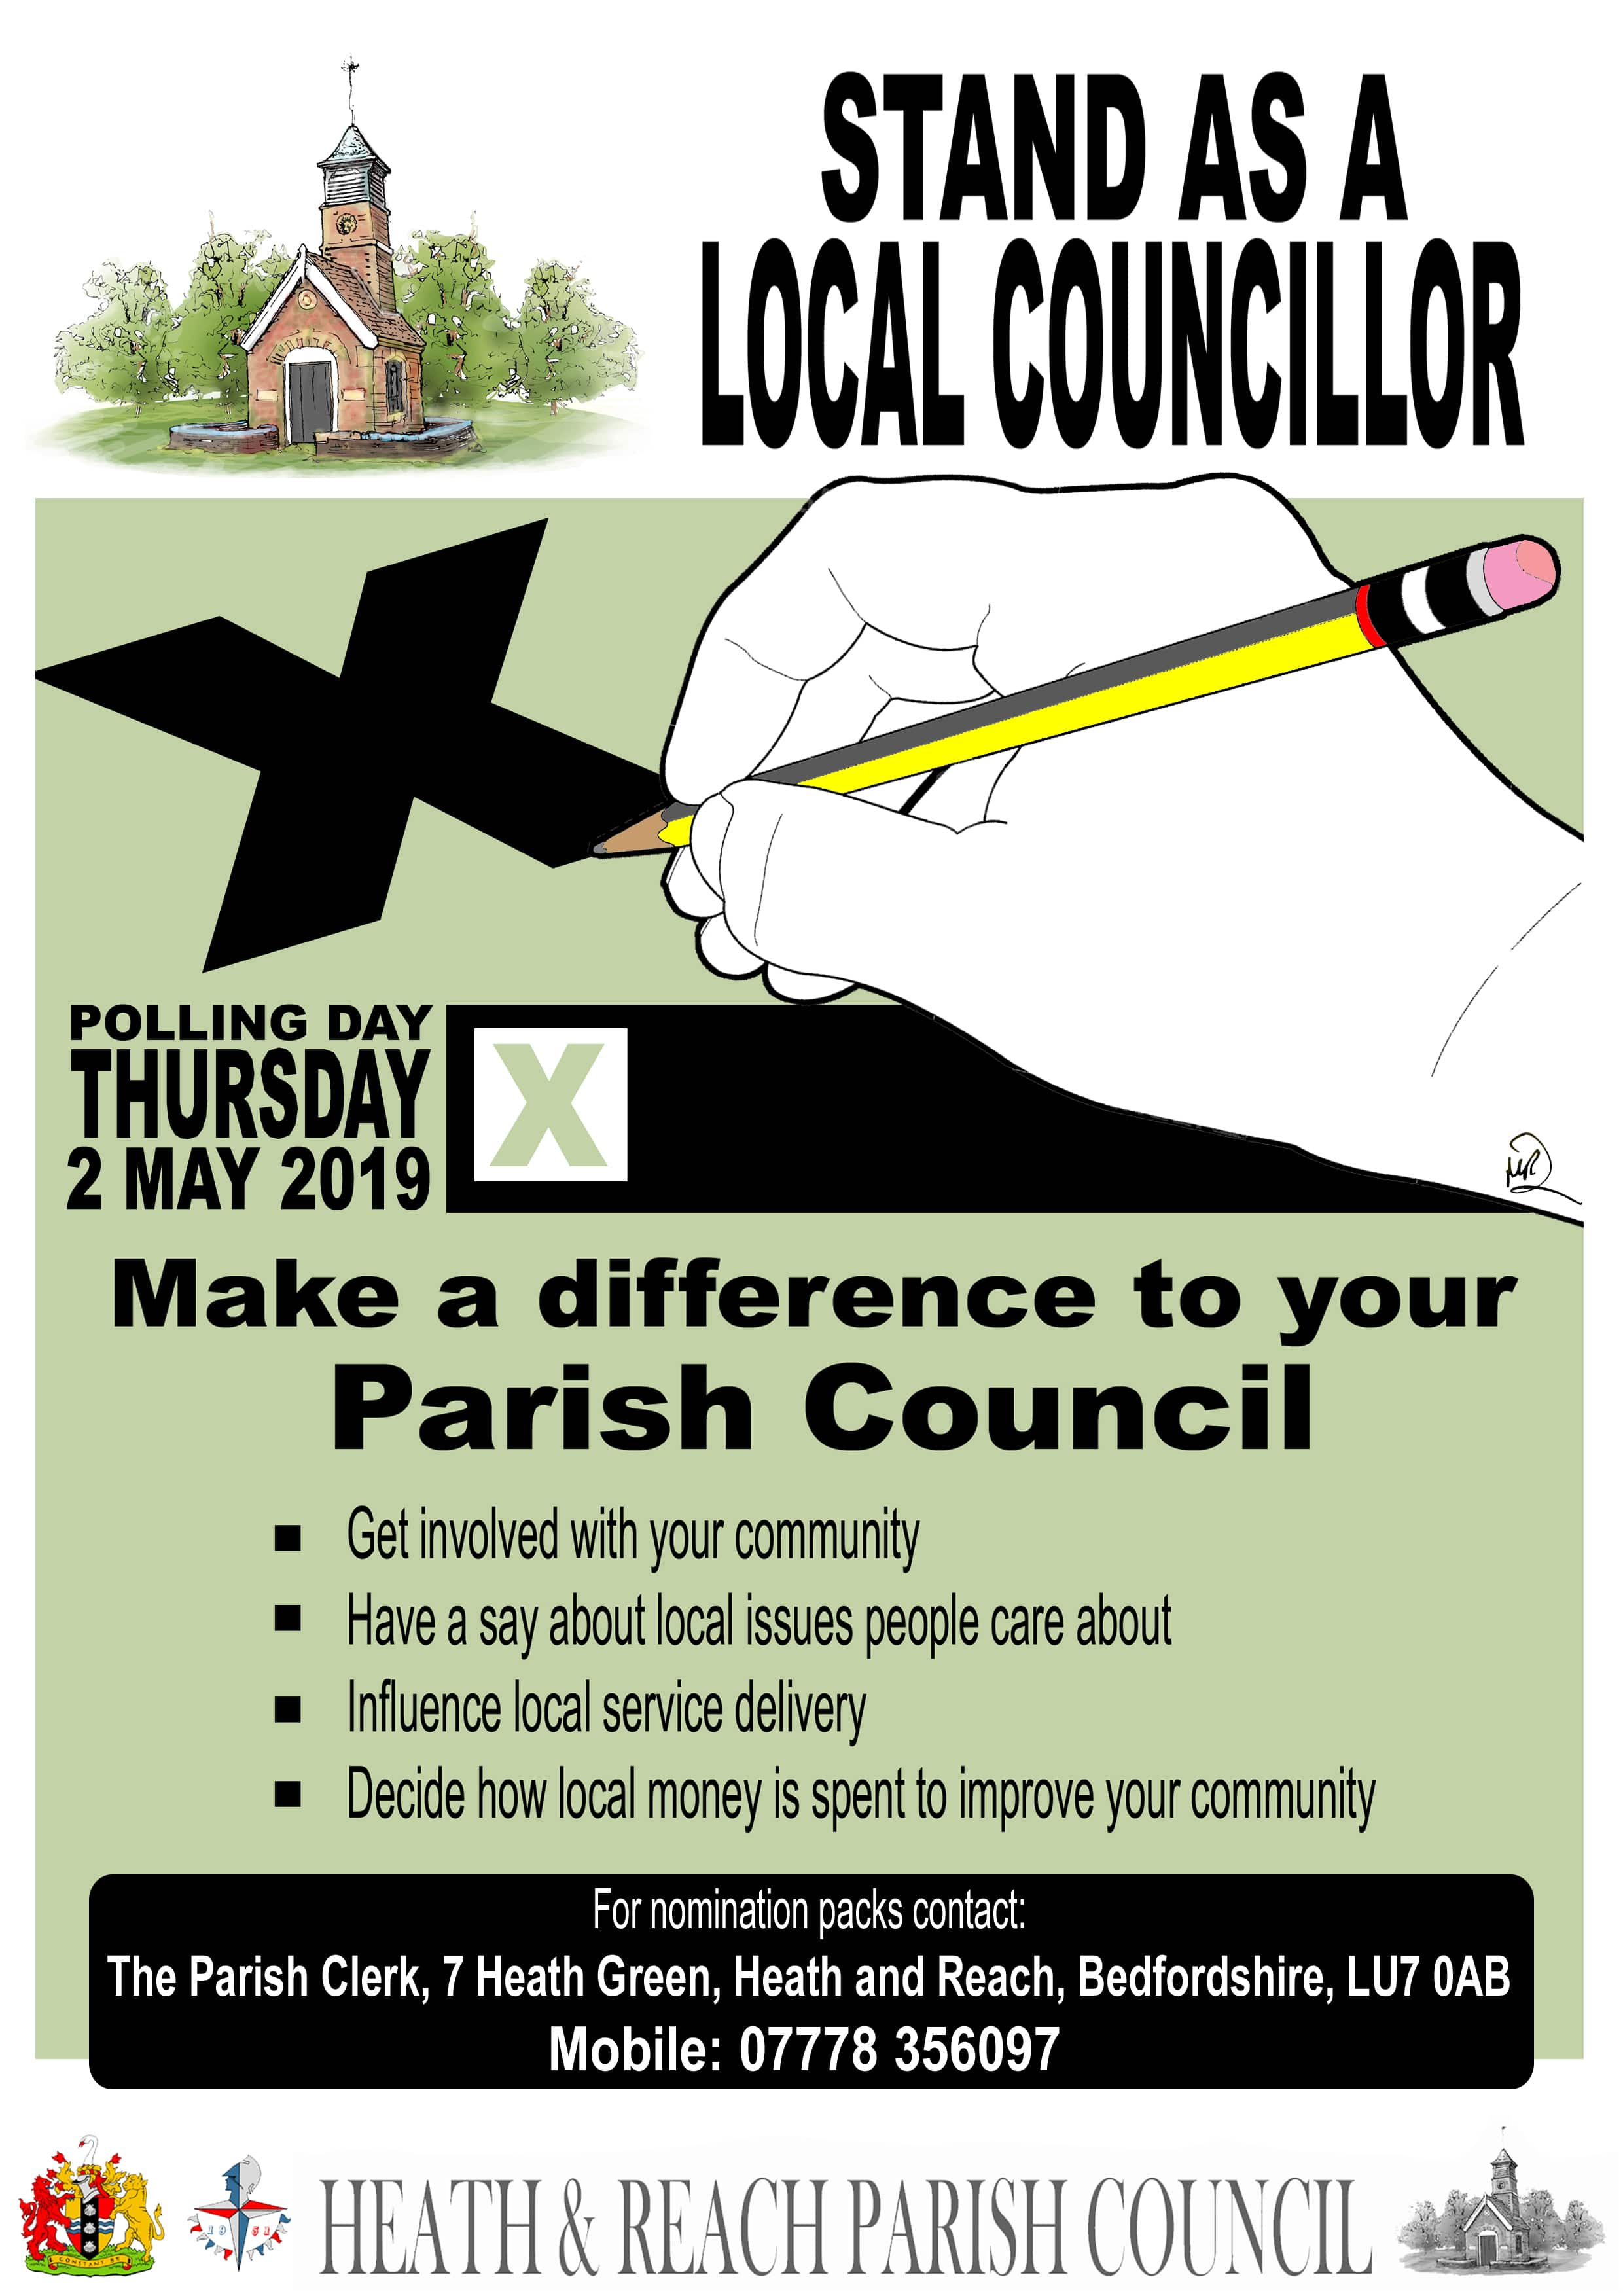 Stand as a local Councillor - poster designed by Martin Richardson from ARTMARt